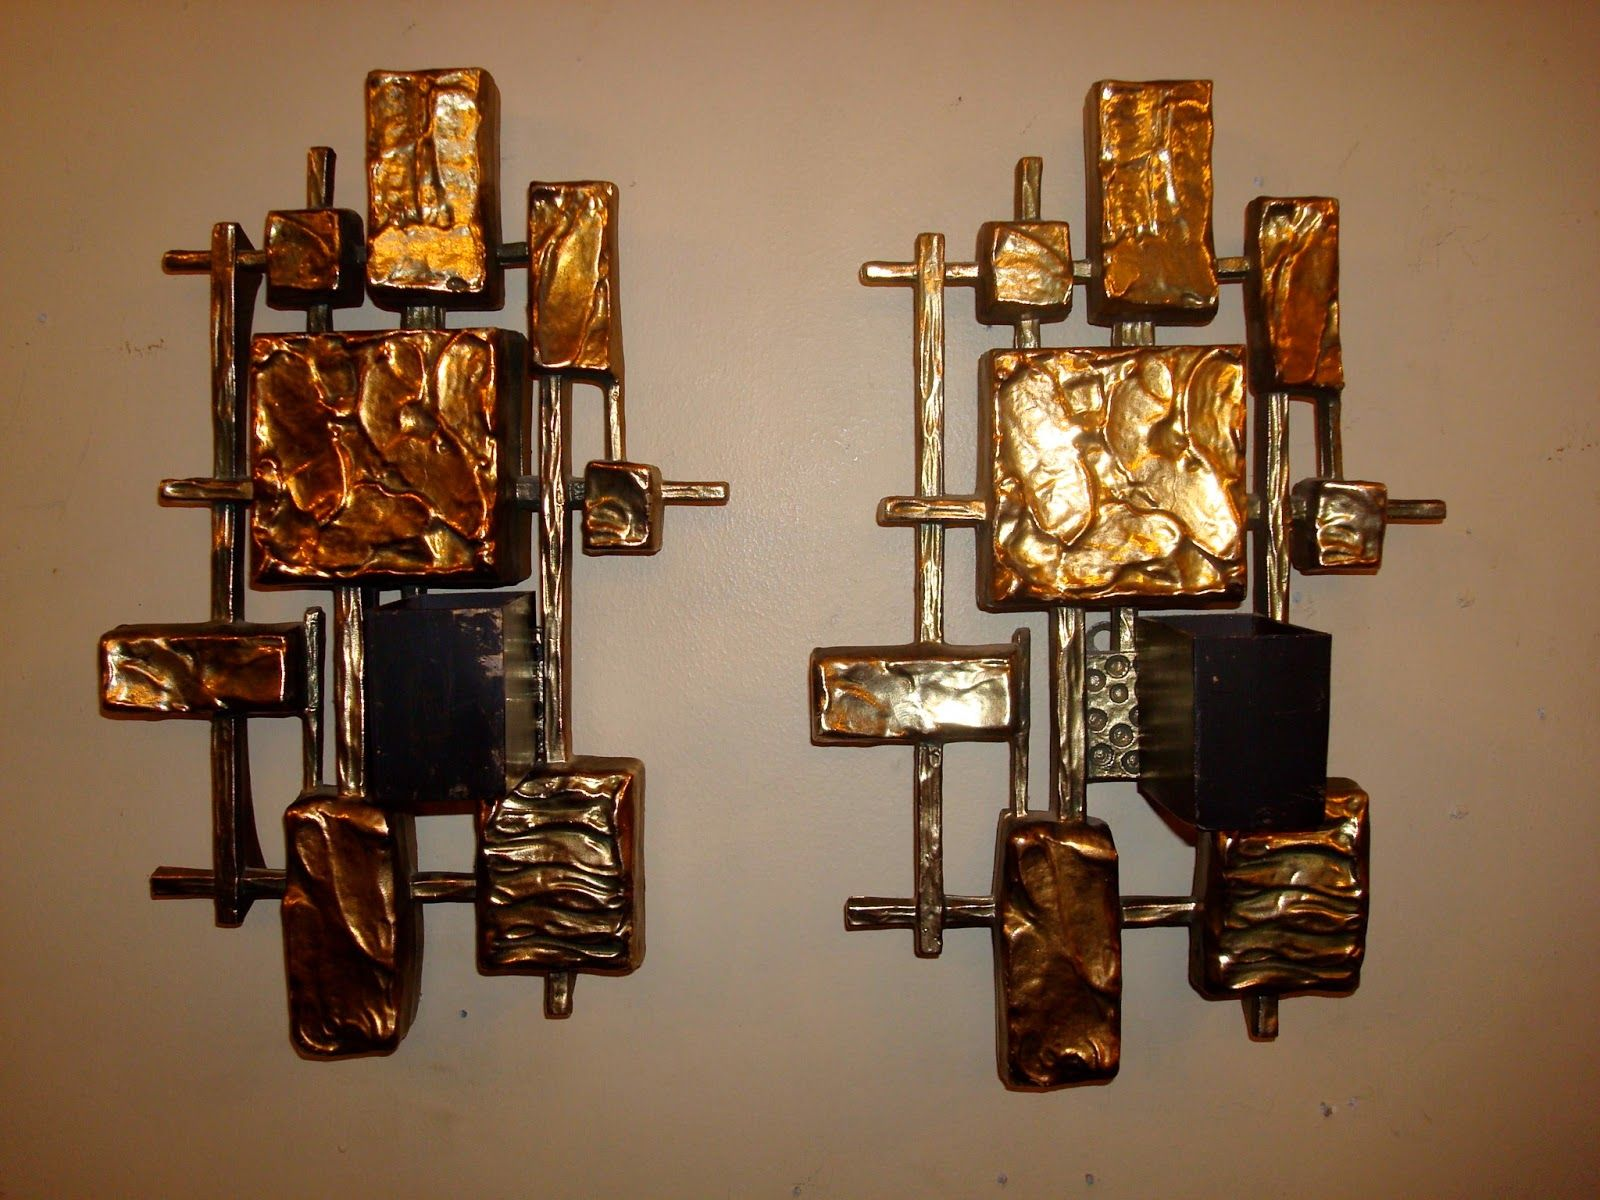 Unique gold square candle sconces for home lighting ideas house a good way to give a light for any room in the house a warm and inviting place is to enjoy candle wall sconce look amipublicfo Gallery